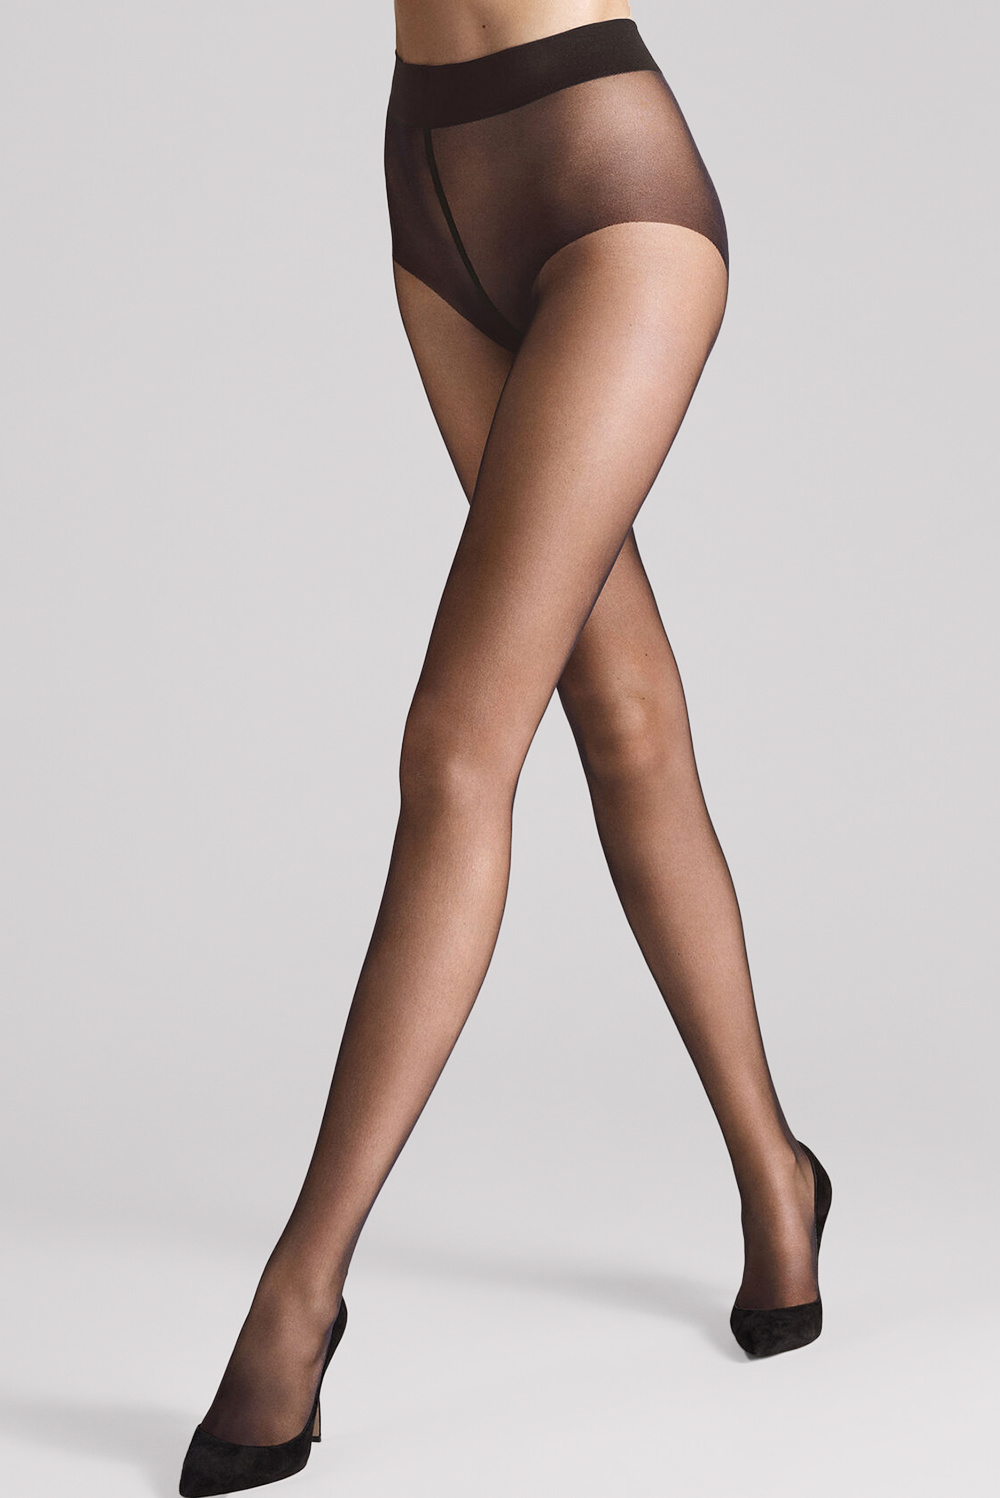 Wolford panty Pure 10 14497 grijs